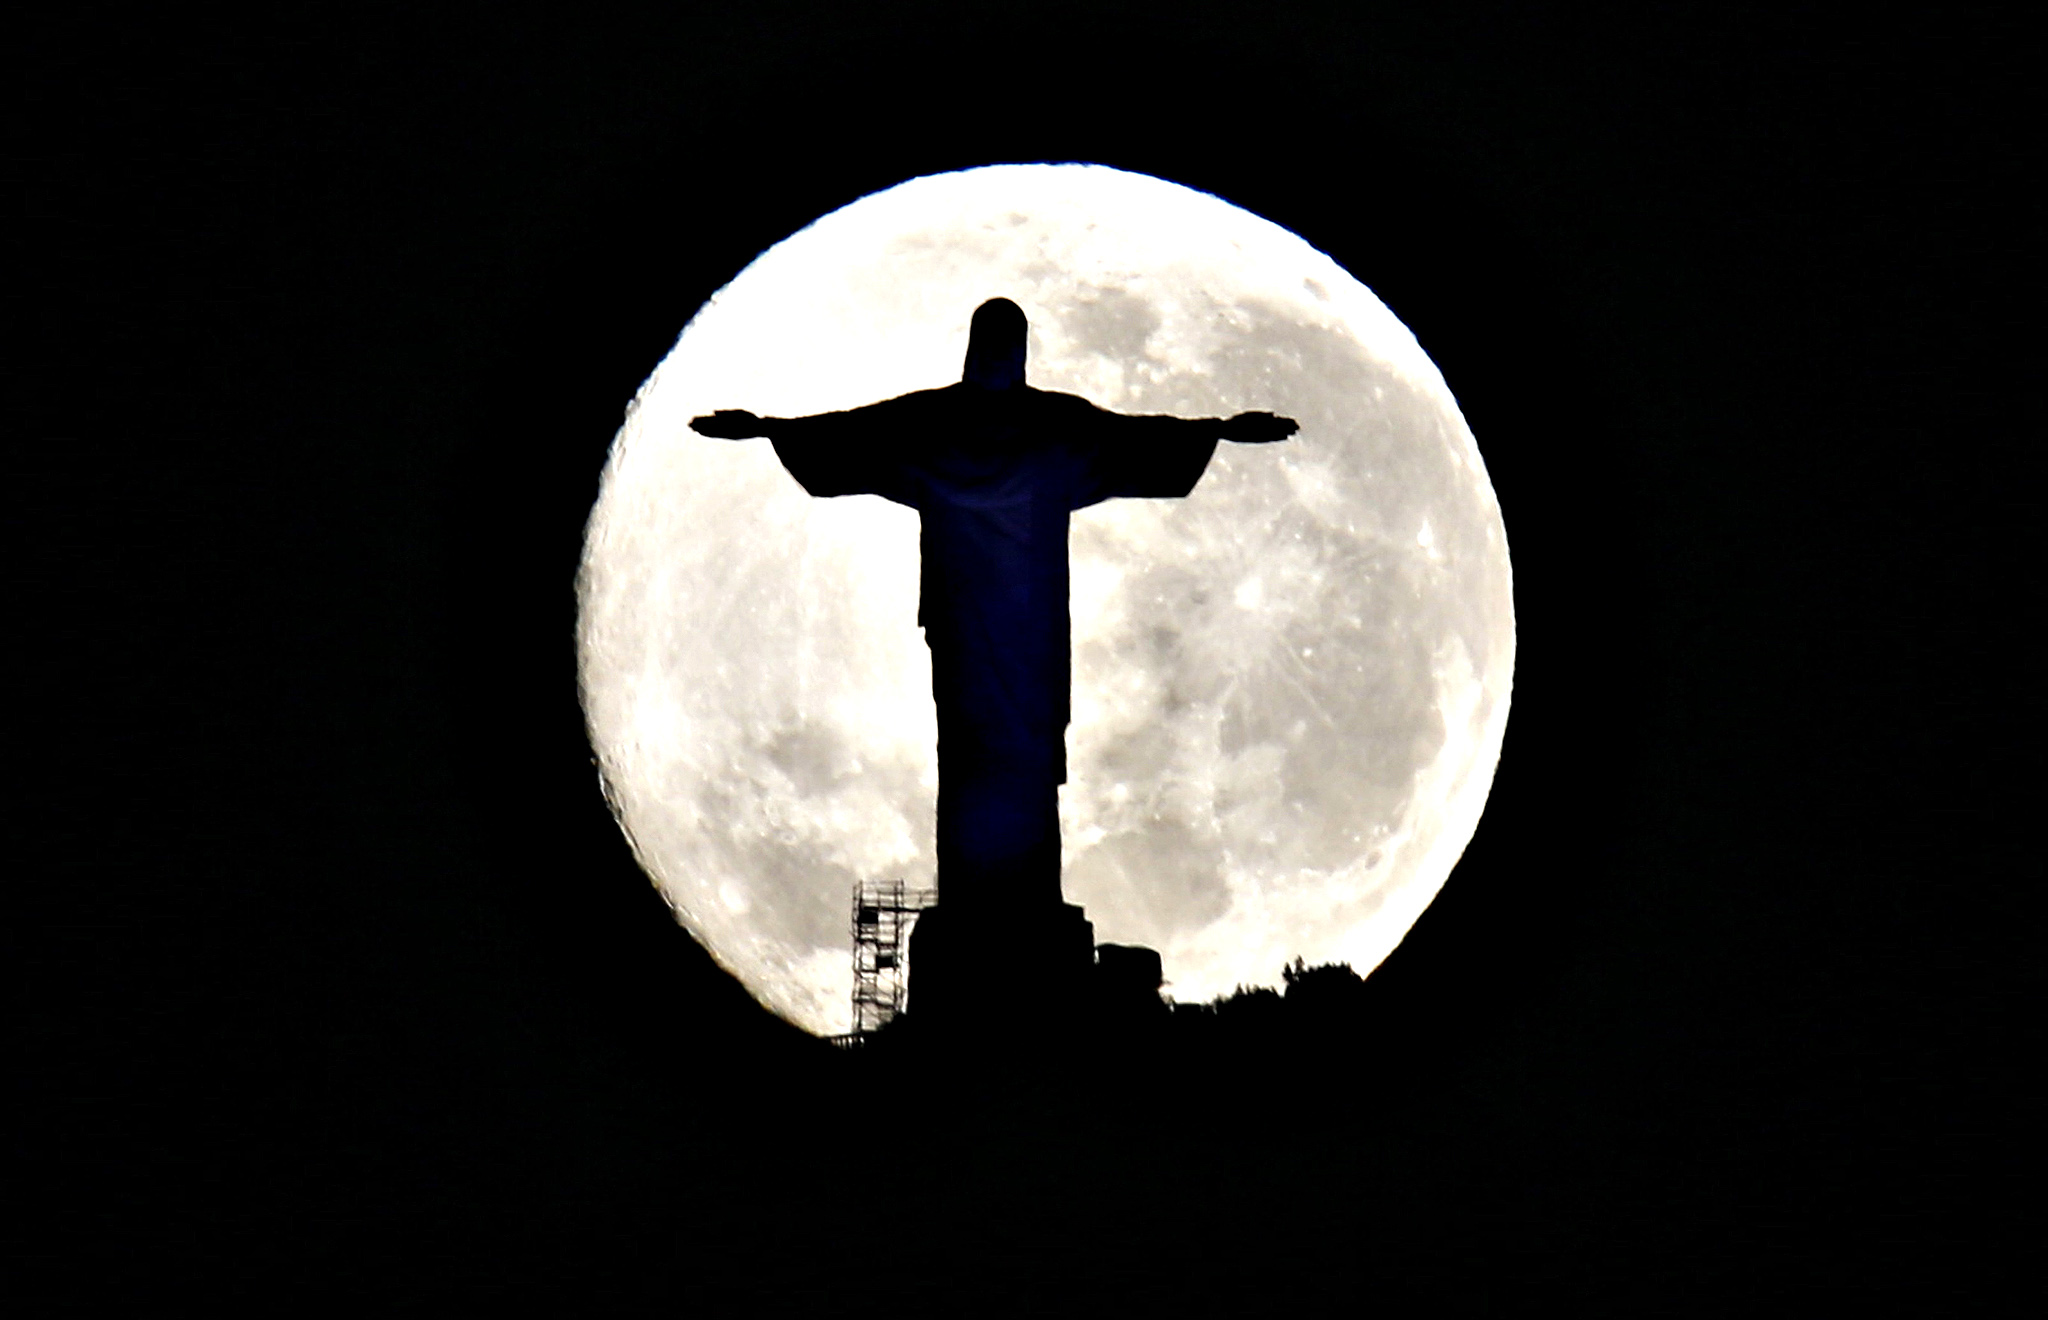 The super moon behind the Christ the Redeemer statue in Rio de Janeiro August 11, 2014. Occurring when a full moon or new moon coincides with the closest approach the moon makes to the Earth, the supermoon results in a larger-than-usual appearance of the lunar disk.